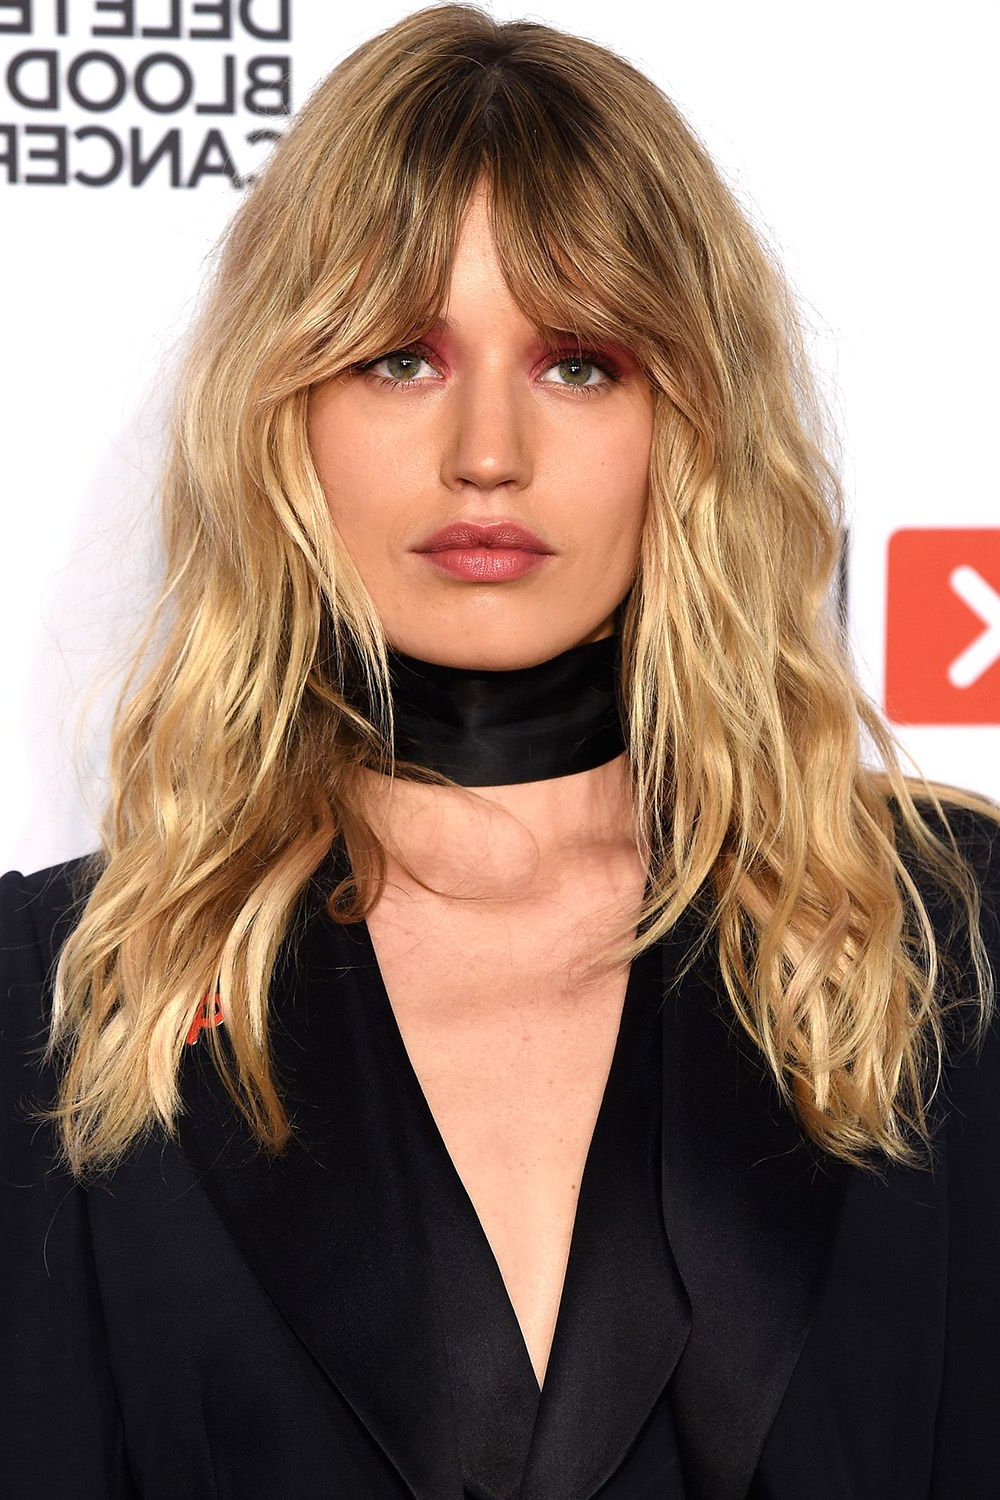 40 Best Medium Hairstyles – Celebrities With Shoulder Length Haircuts Intended For Newest Ladies Medium Hairstyles With Fringe (View 18 of 20)